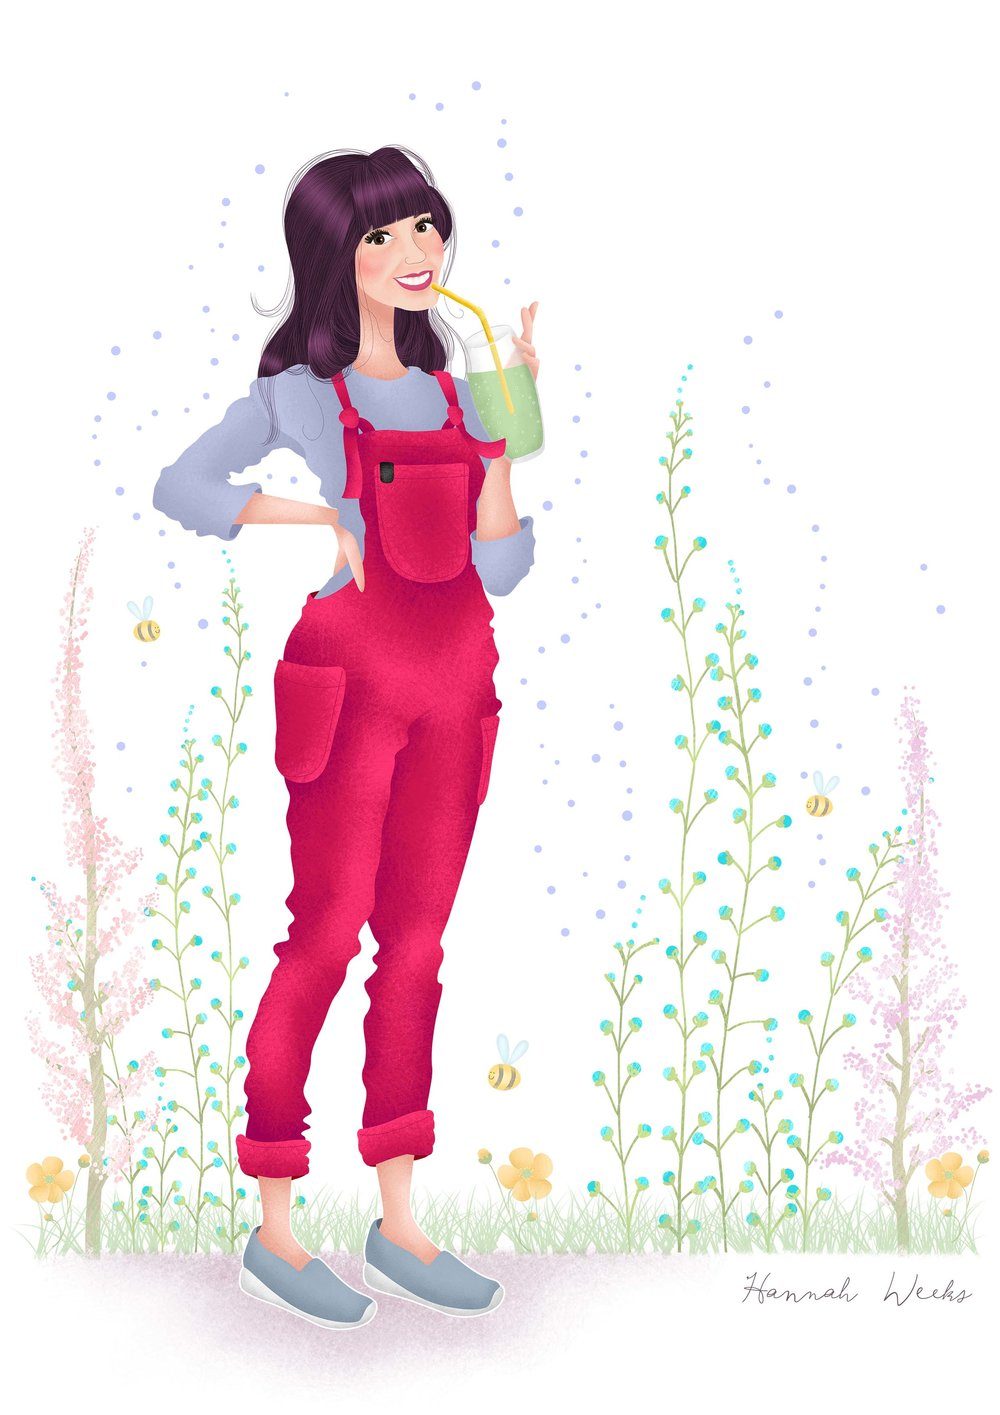 'Luna' dungarees in raspberry - I want and need these very much!